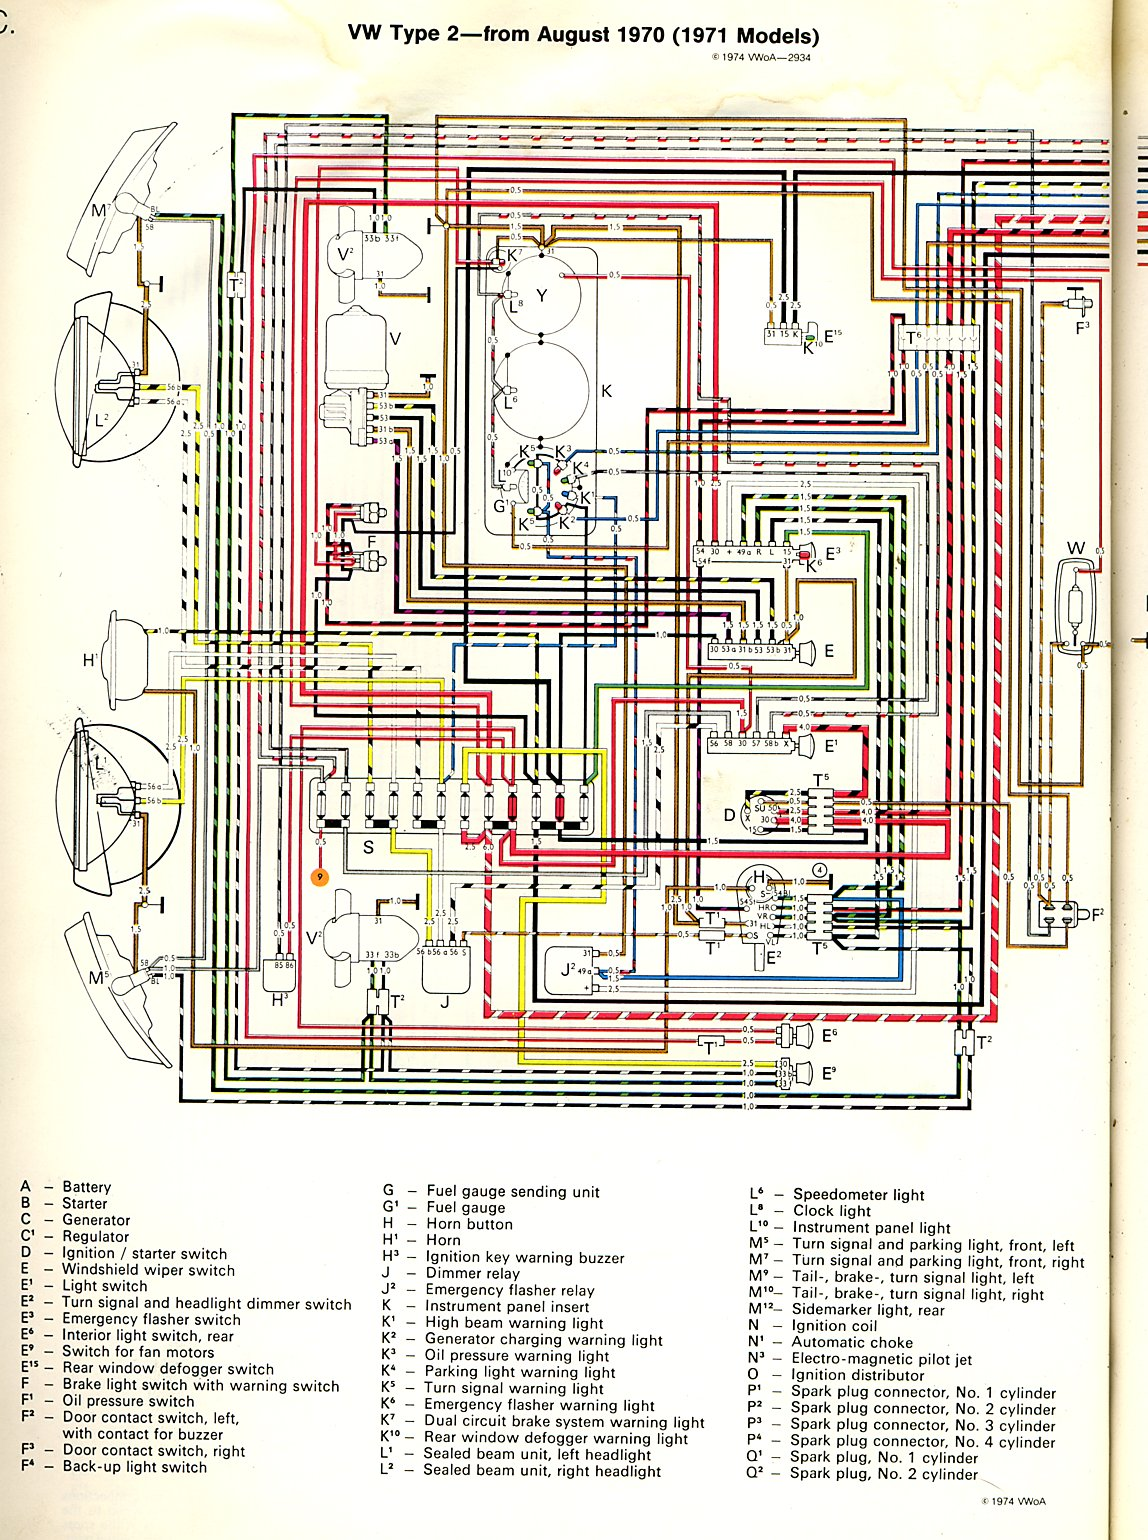 baybus_71a thesamba com type 2 wiring diagrams 1978 vw bus fuse box diagram at metegol.co